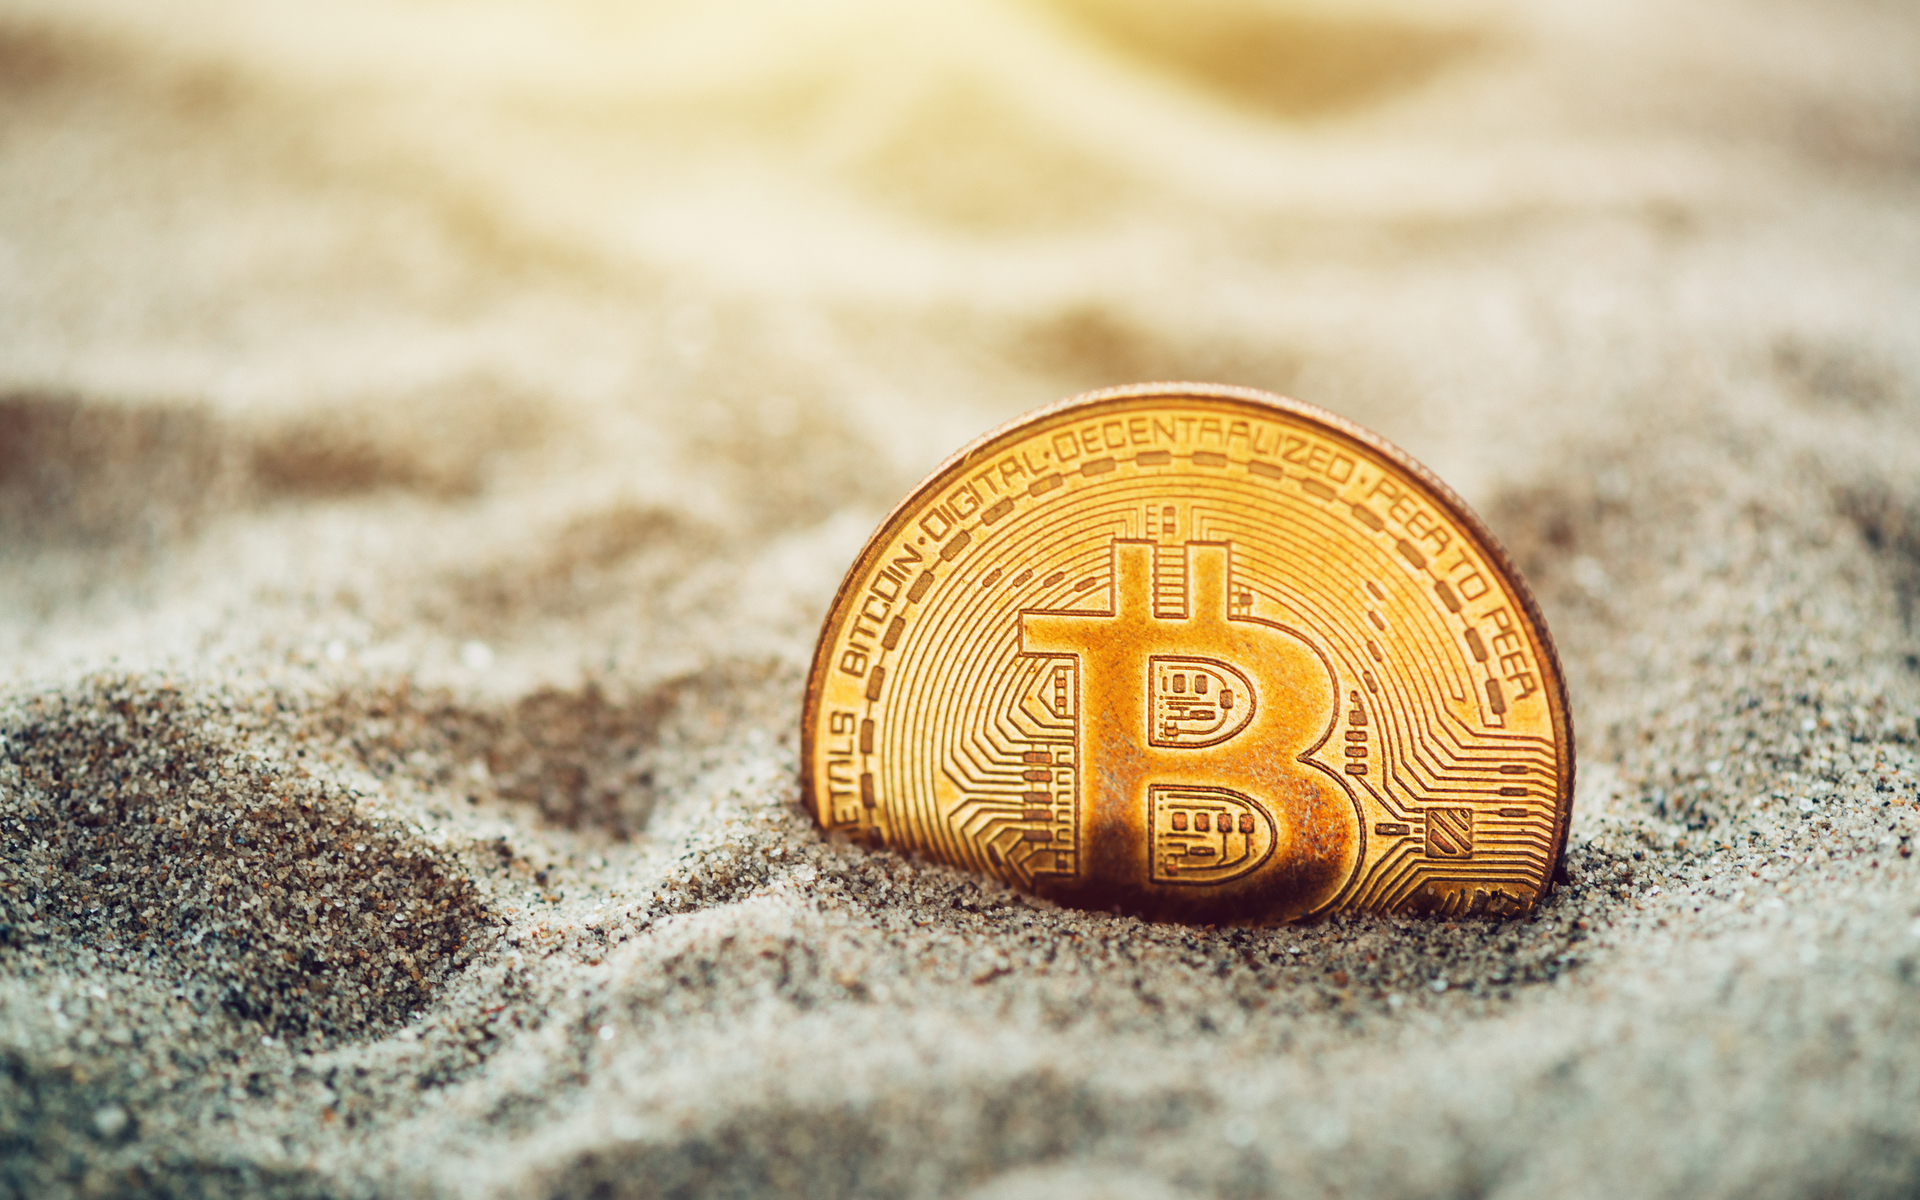 more bitcoin hashes than sand